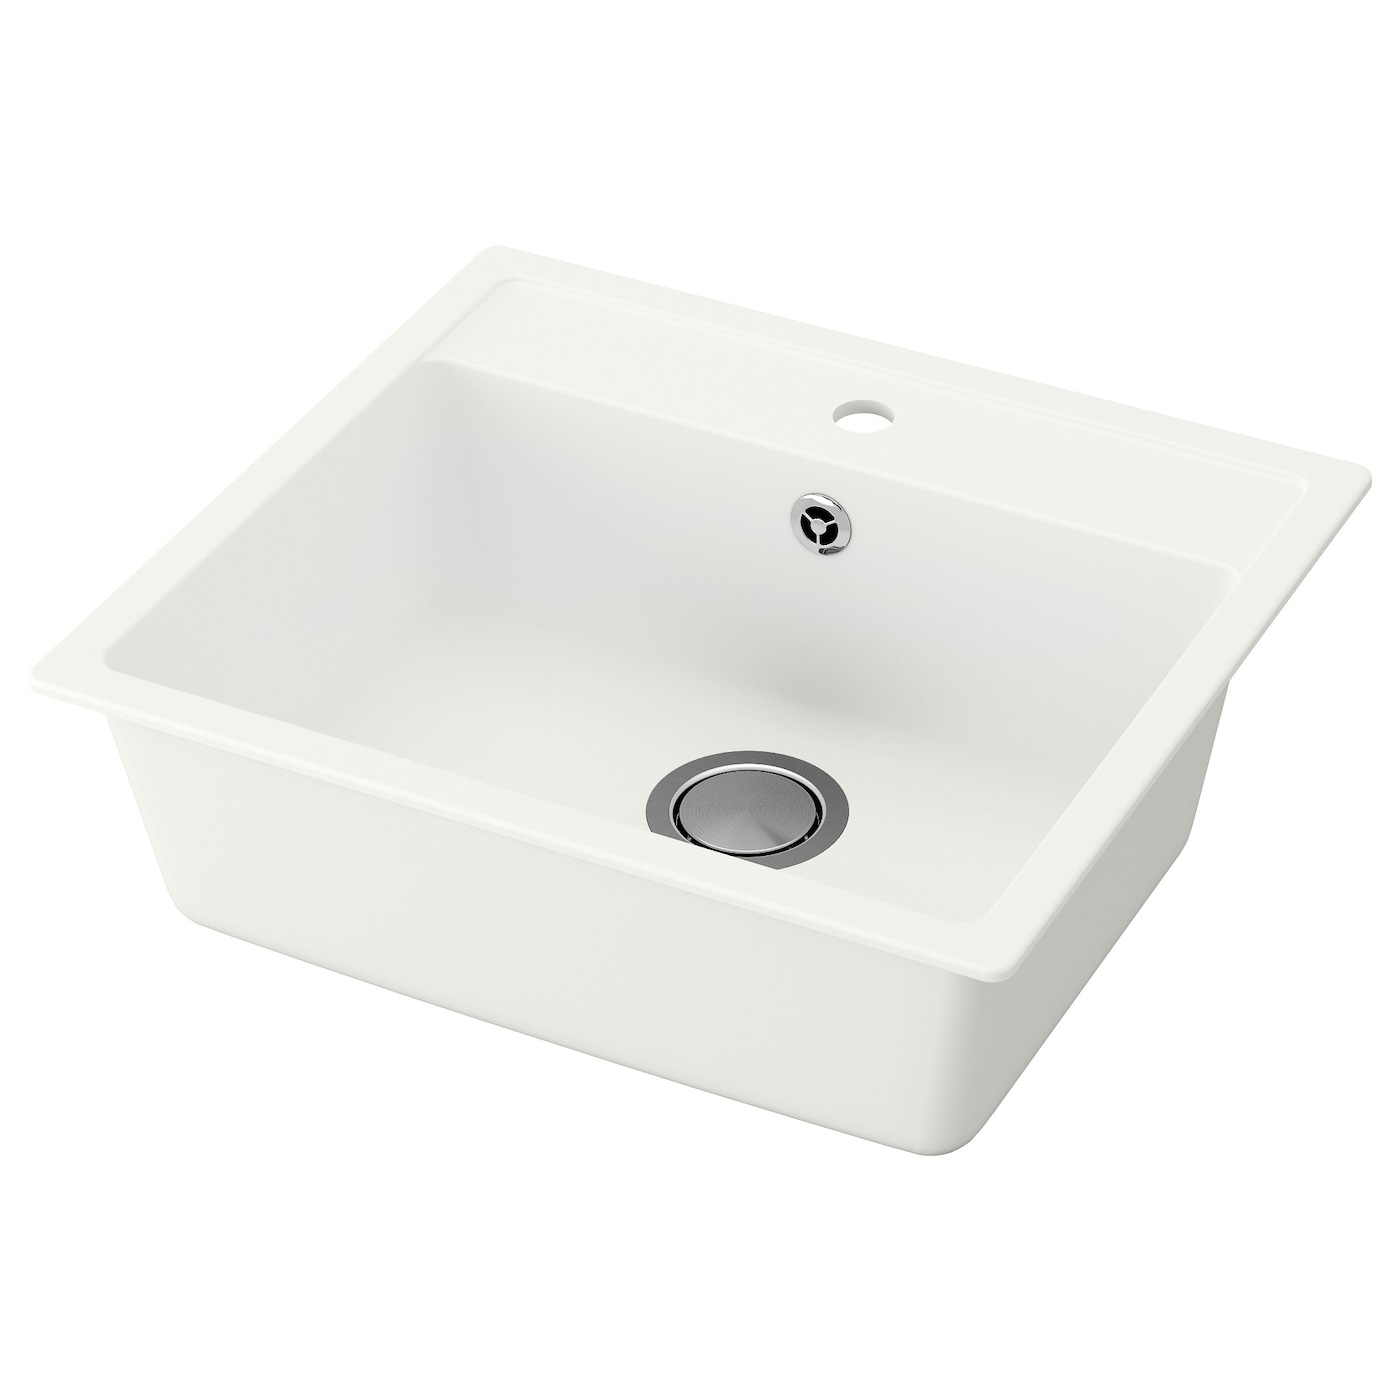 IKEA HÄLLVIKEN inset sink, 1 bowl 25 year guarantee. Read about the terms in the guarantee brochure.